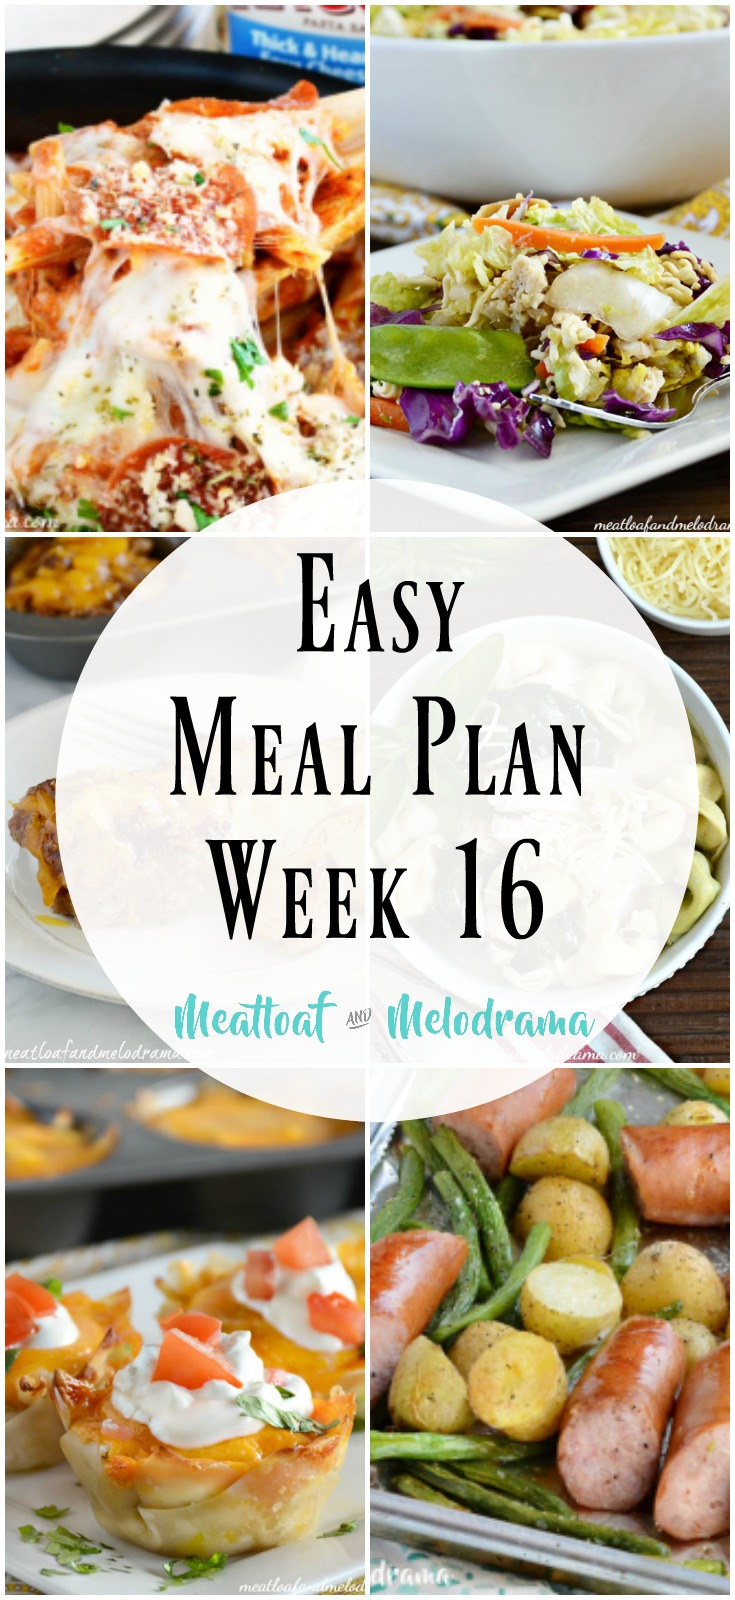 easy meal plan week 16 @meatloafandmelodrama.com